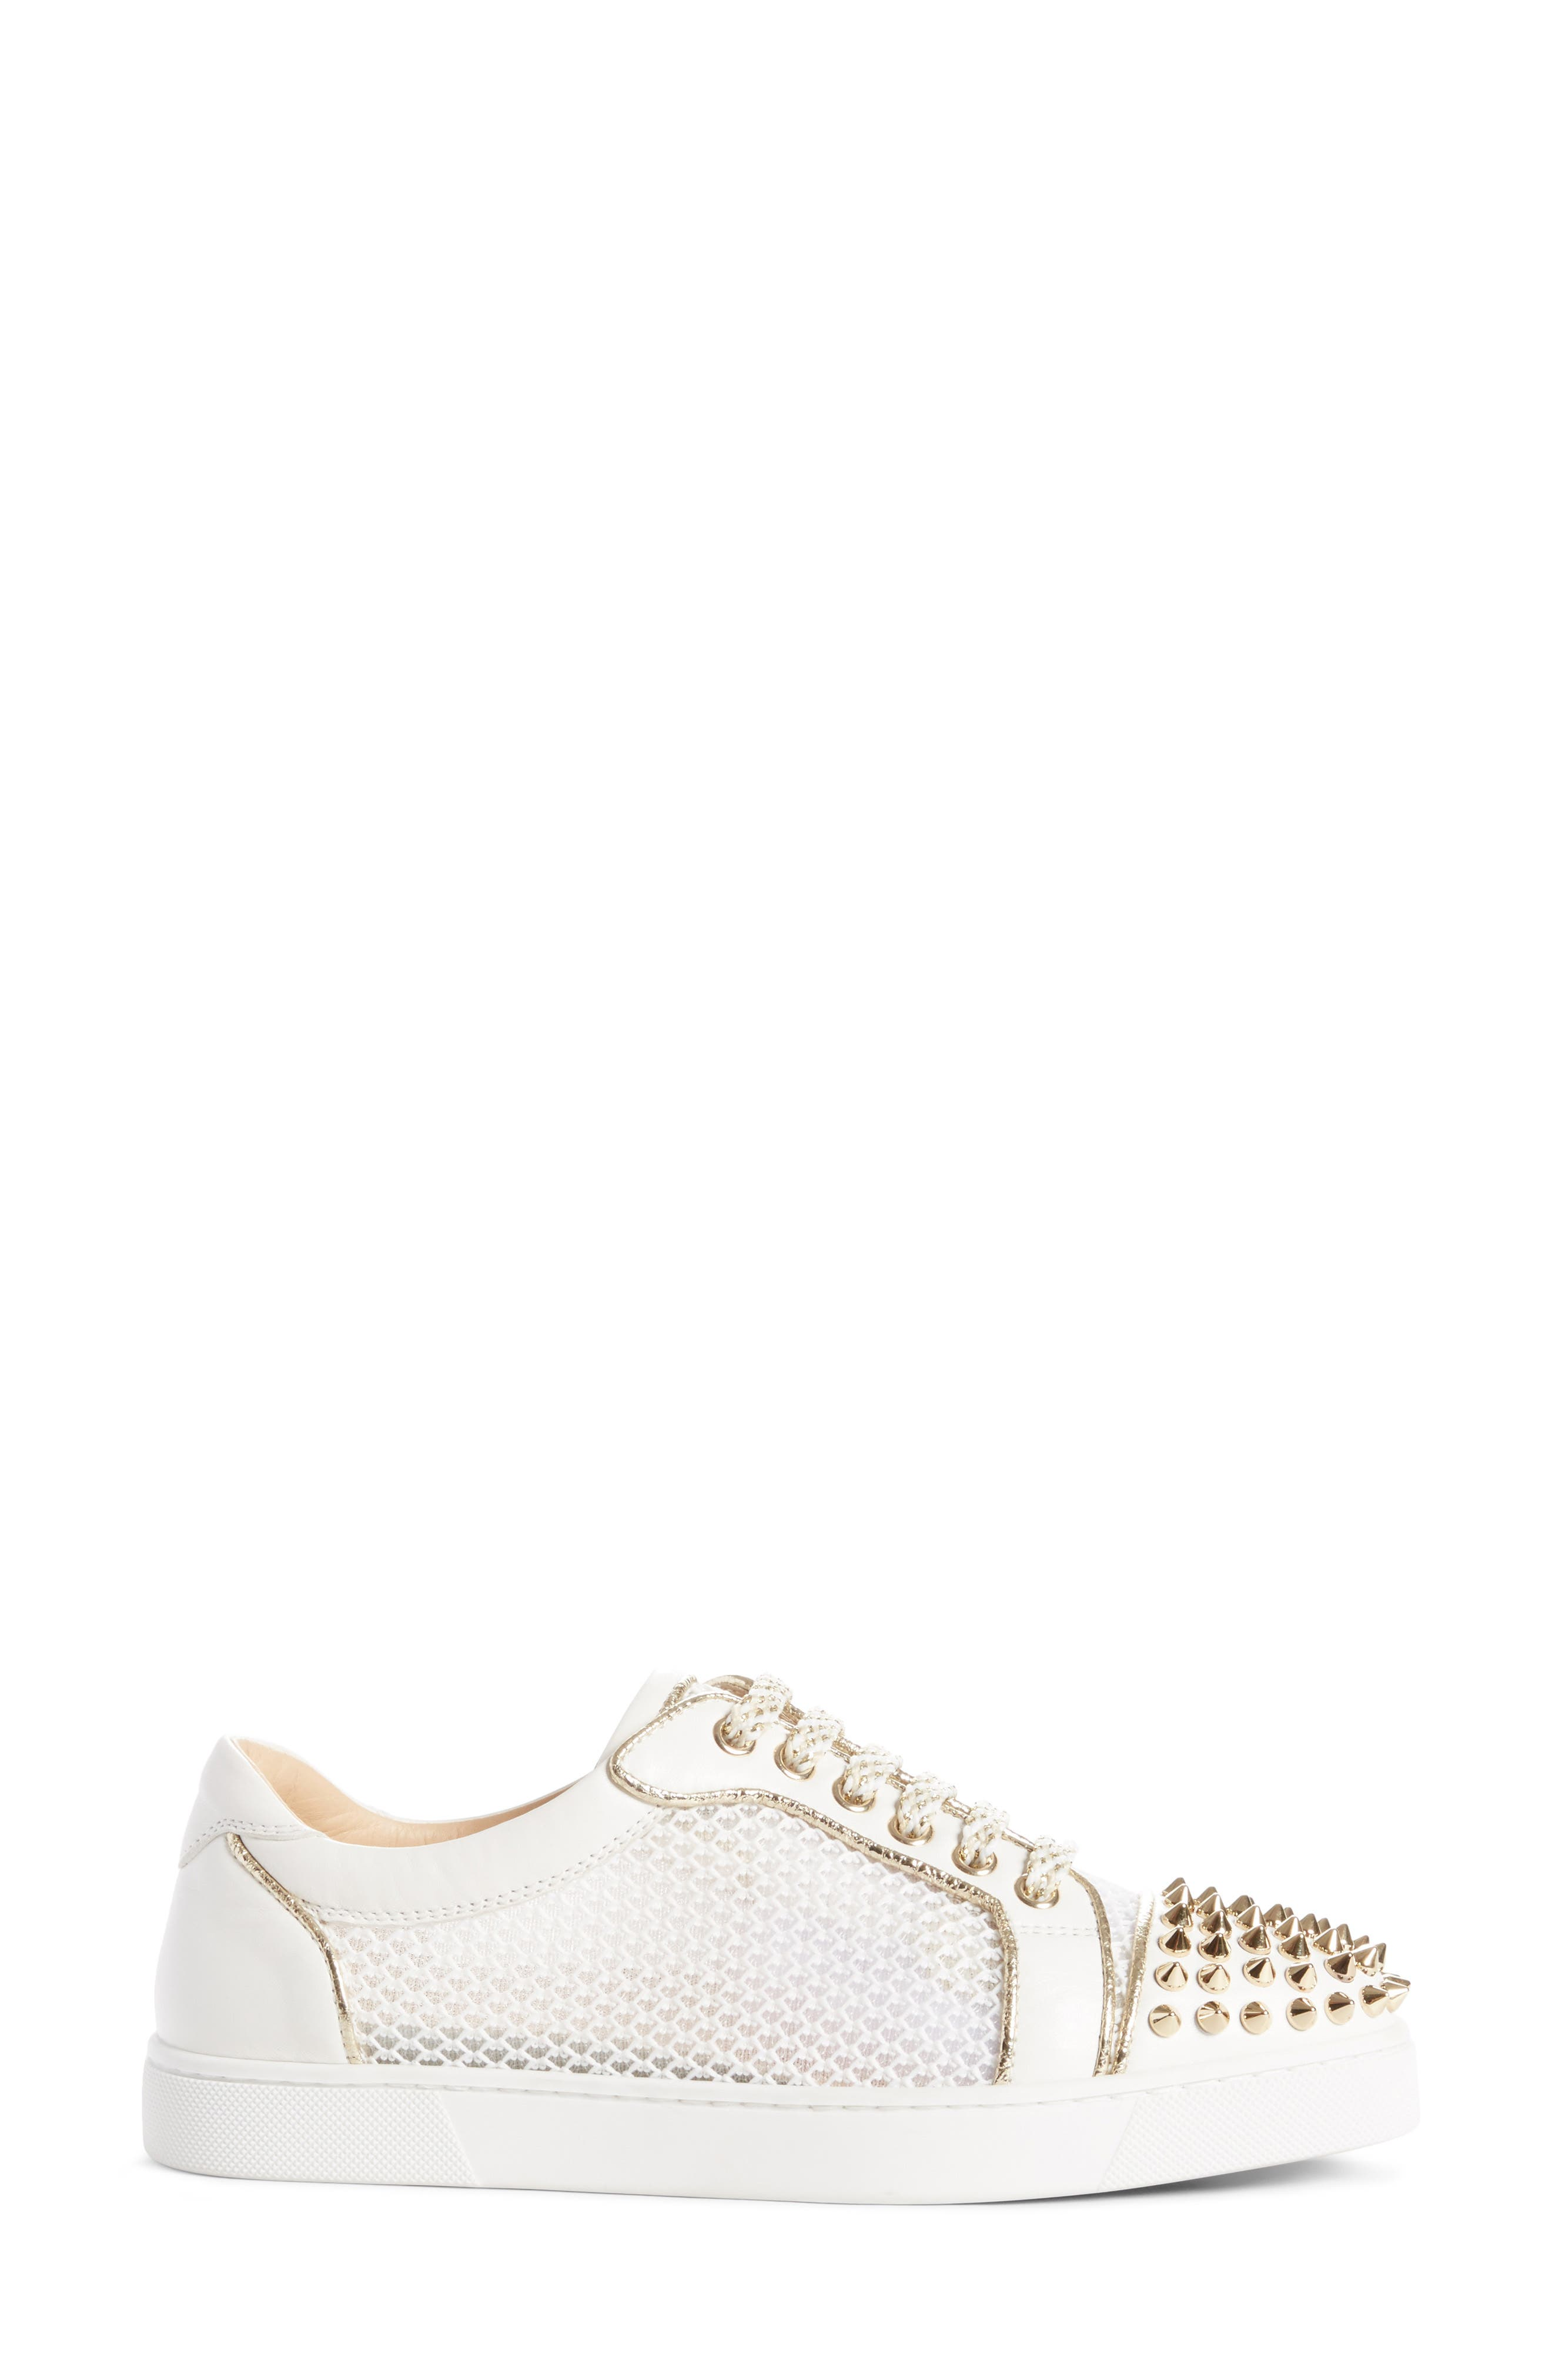 Vieira Spiked Low Top Sneaker,                             Alternate thumbnail 3, color,                             LATTE/ LIGHT GOLD